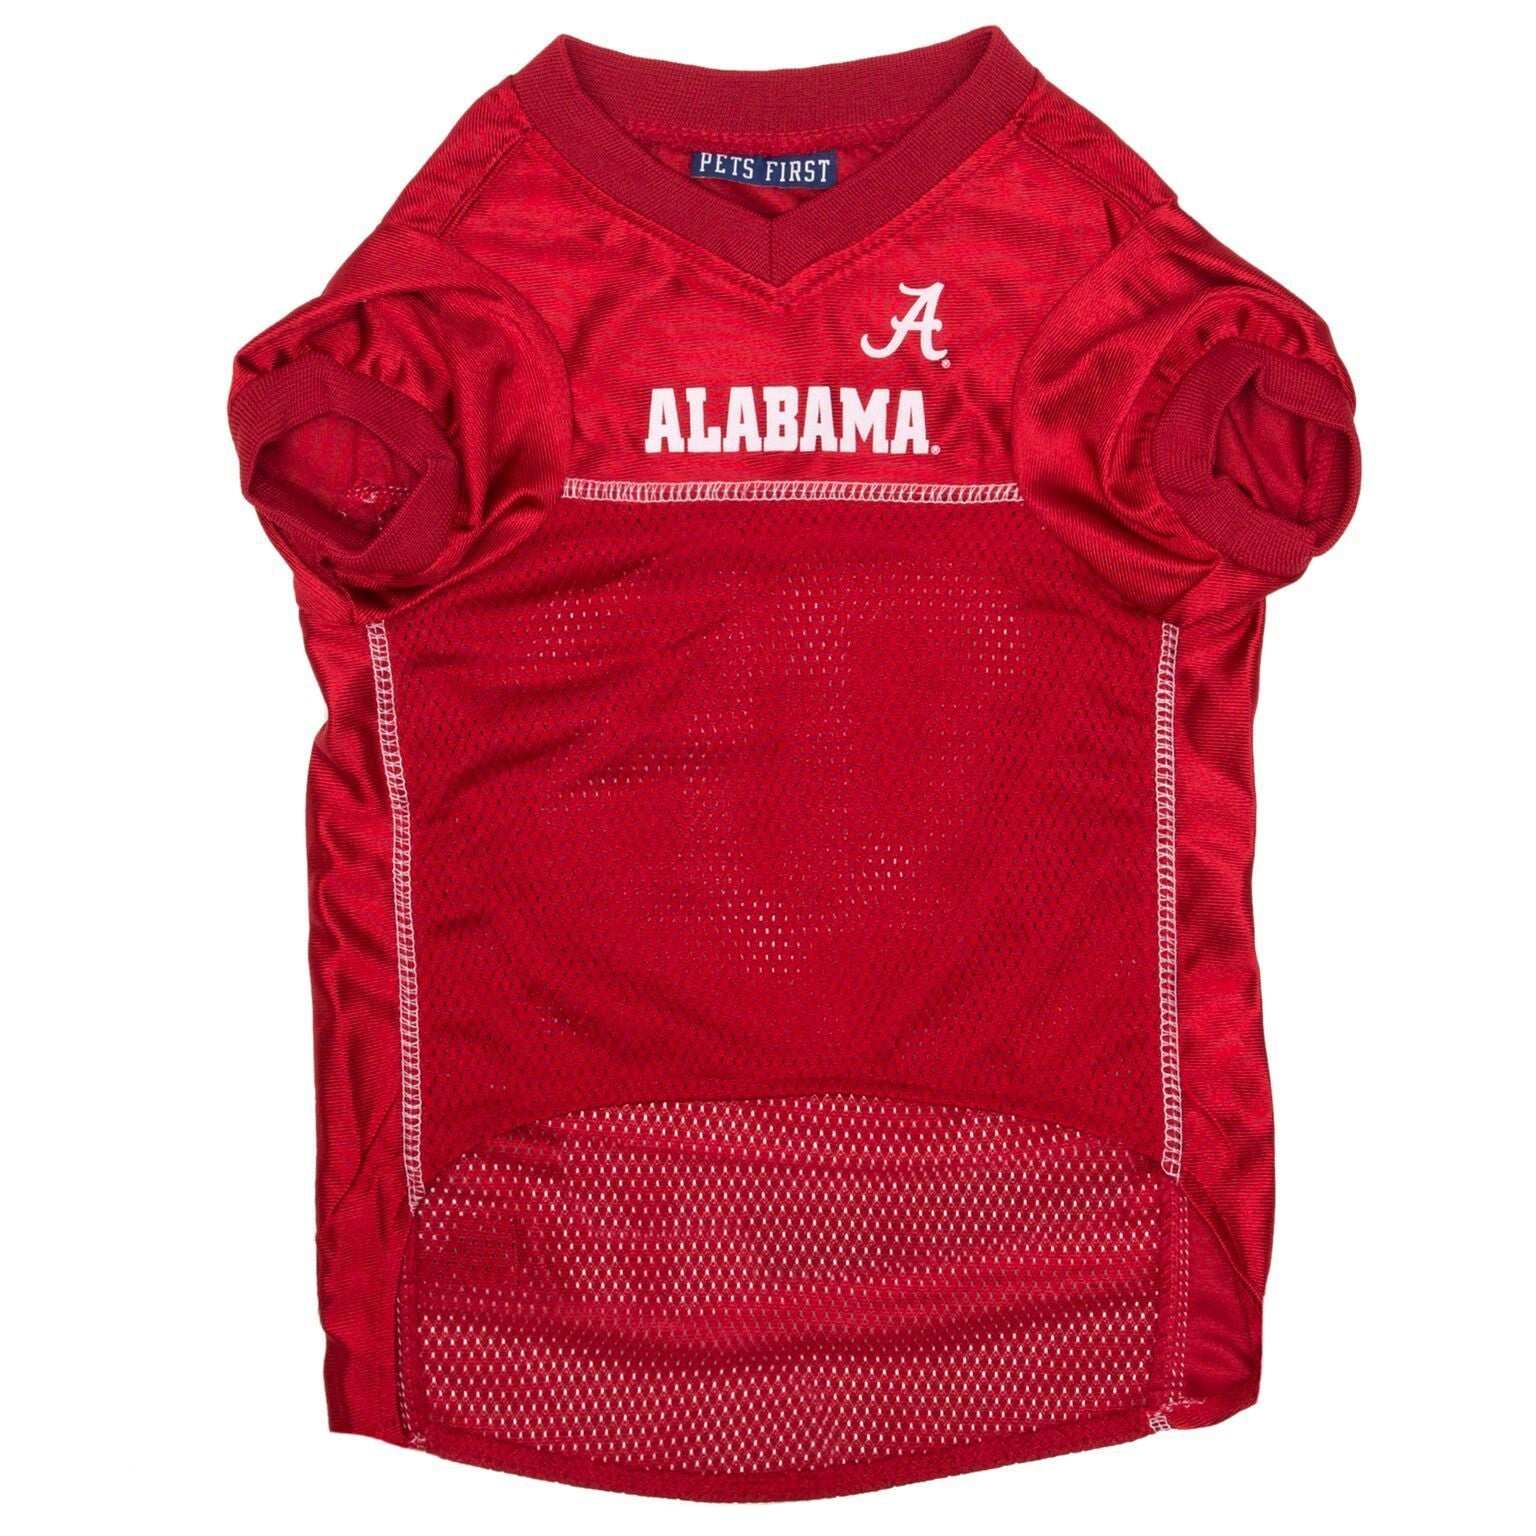 Alabama Crimson Tide Puppy Dog Football Jersey - Jersey Champs